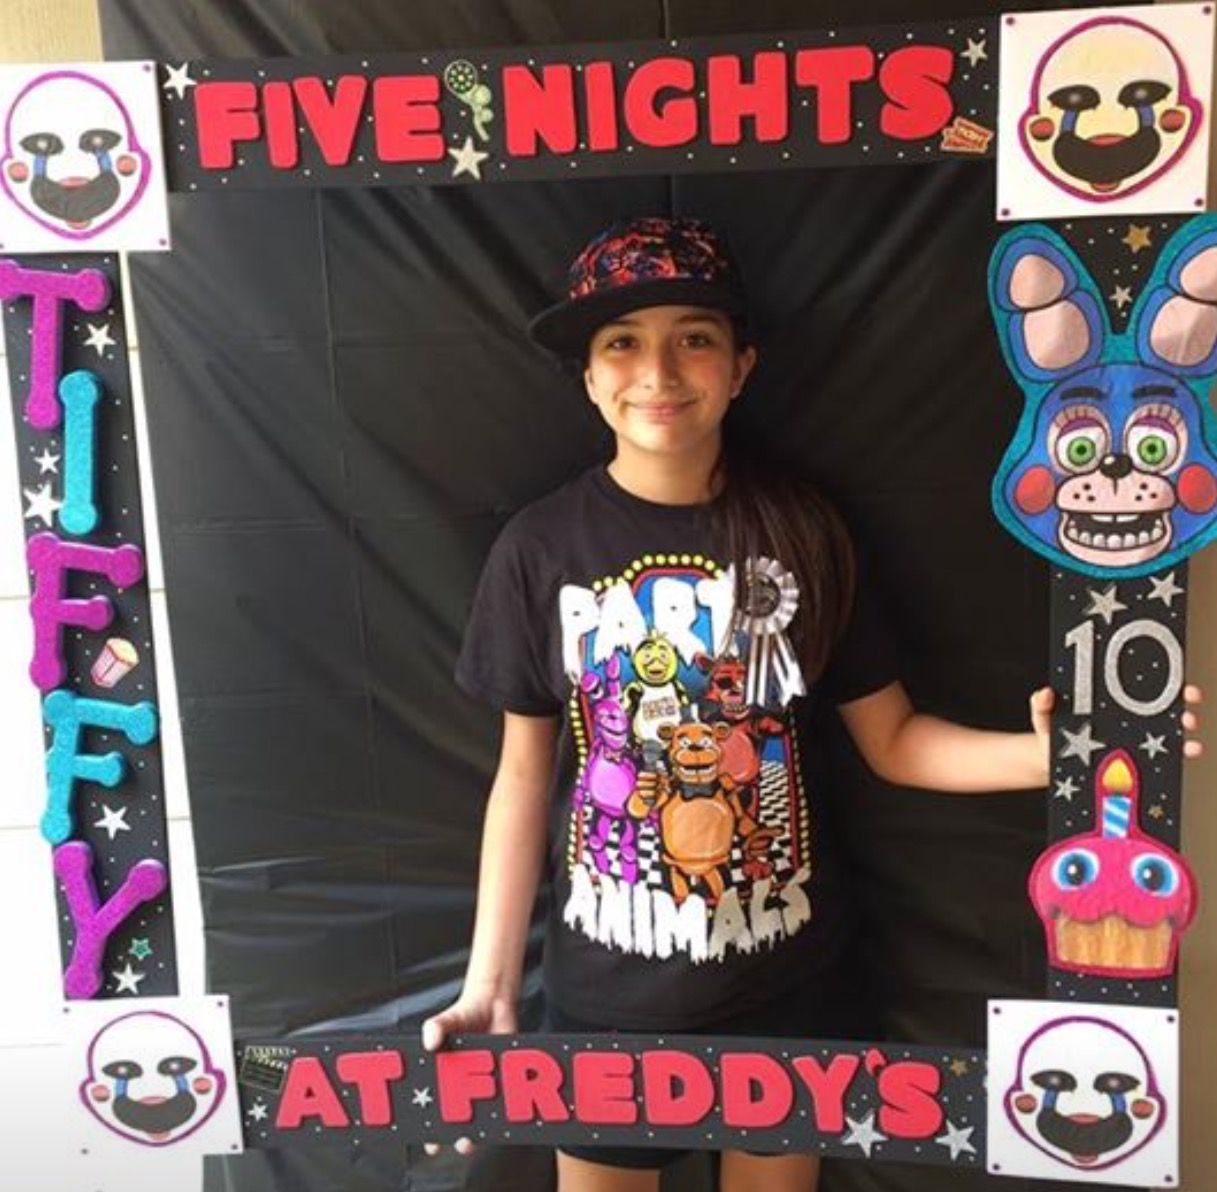 Ideas five nights at freddy party - My Daughter S Five Nights At Freddy S Birthday Photo Frame That I Made For Her Party